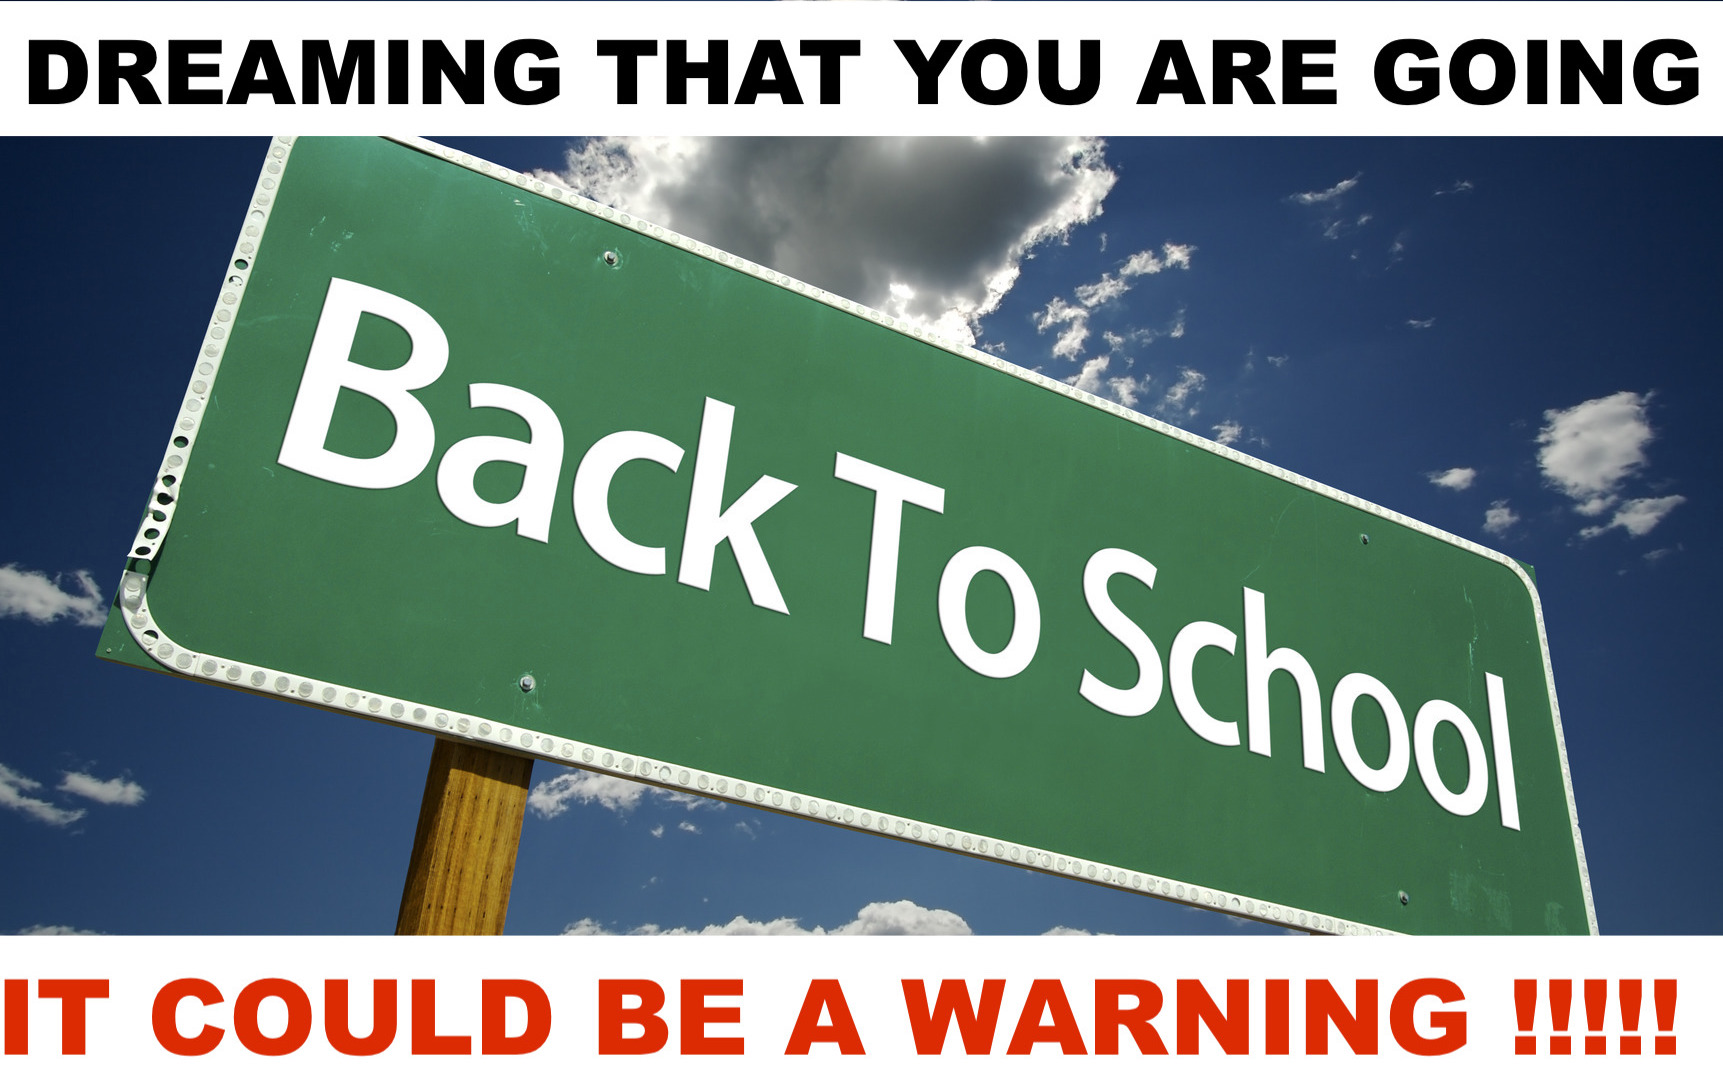 Prophet Climate Ministries Dreaming-Going-Back-To-school- Had A Dreams About Going Back To School - Here Is The The Meaning And The Warnings !!!!!